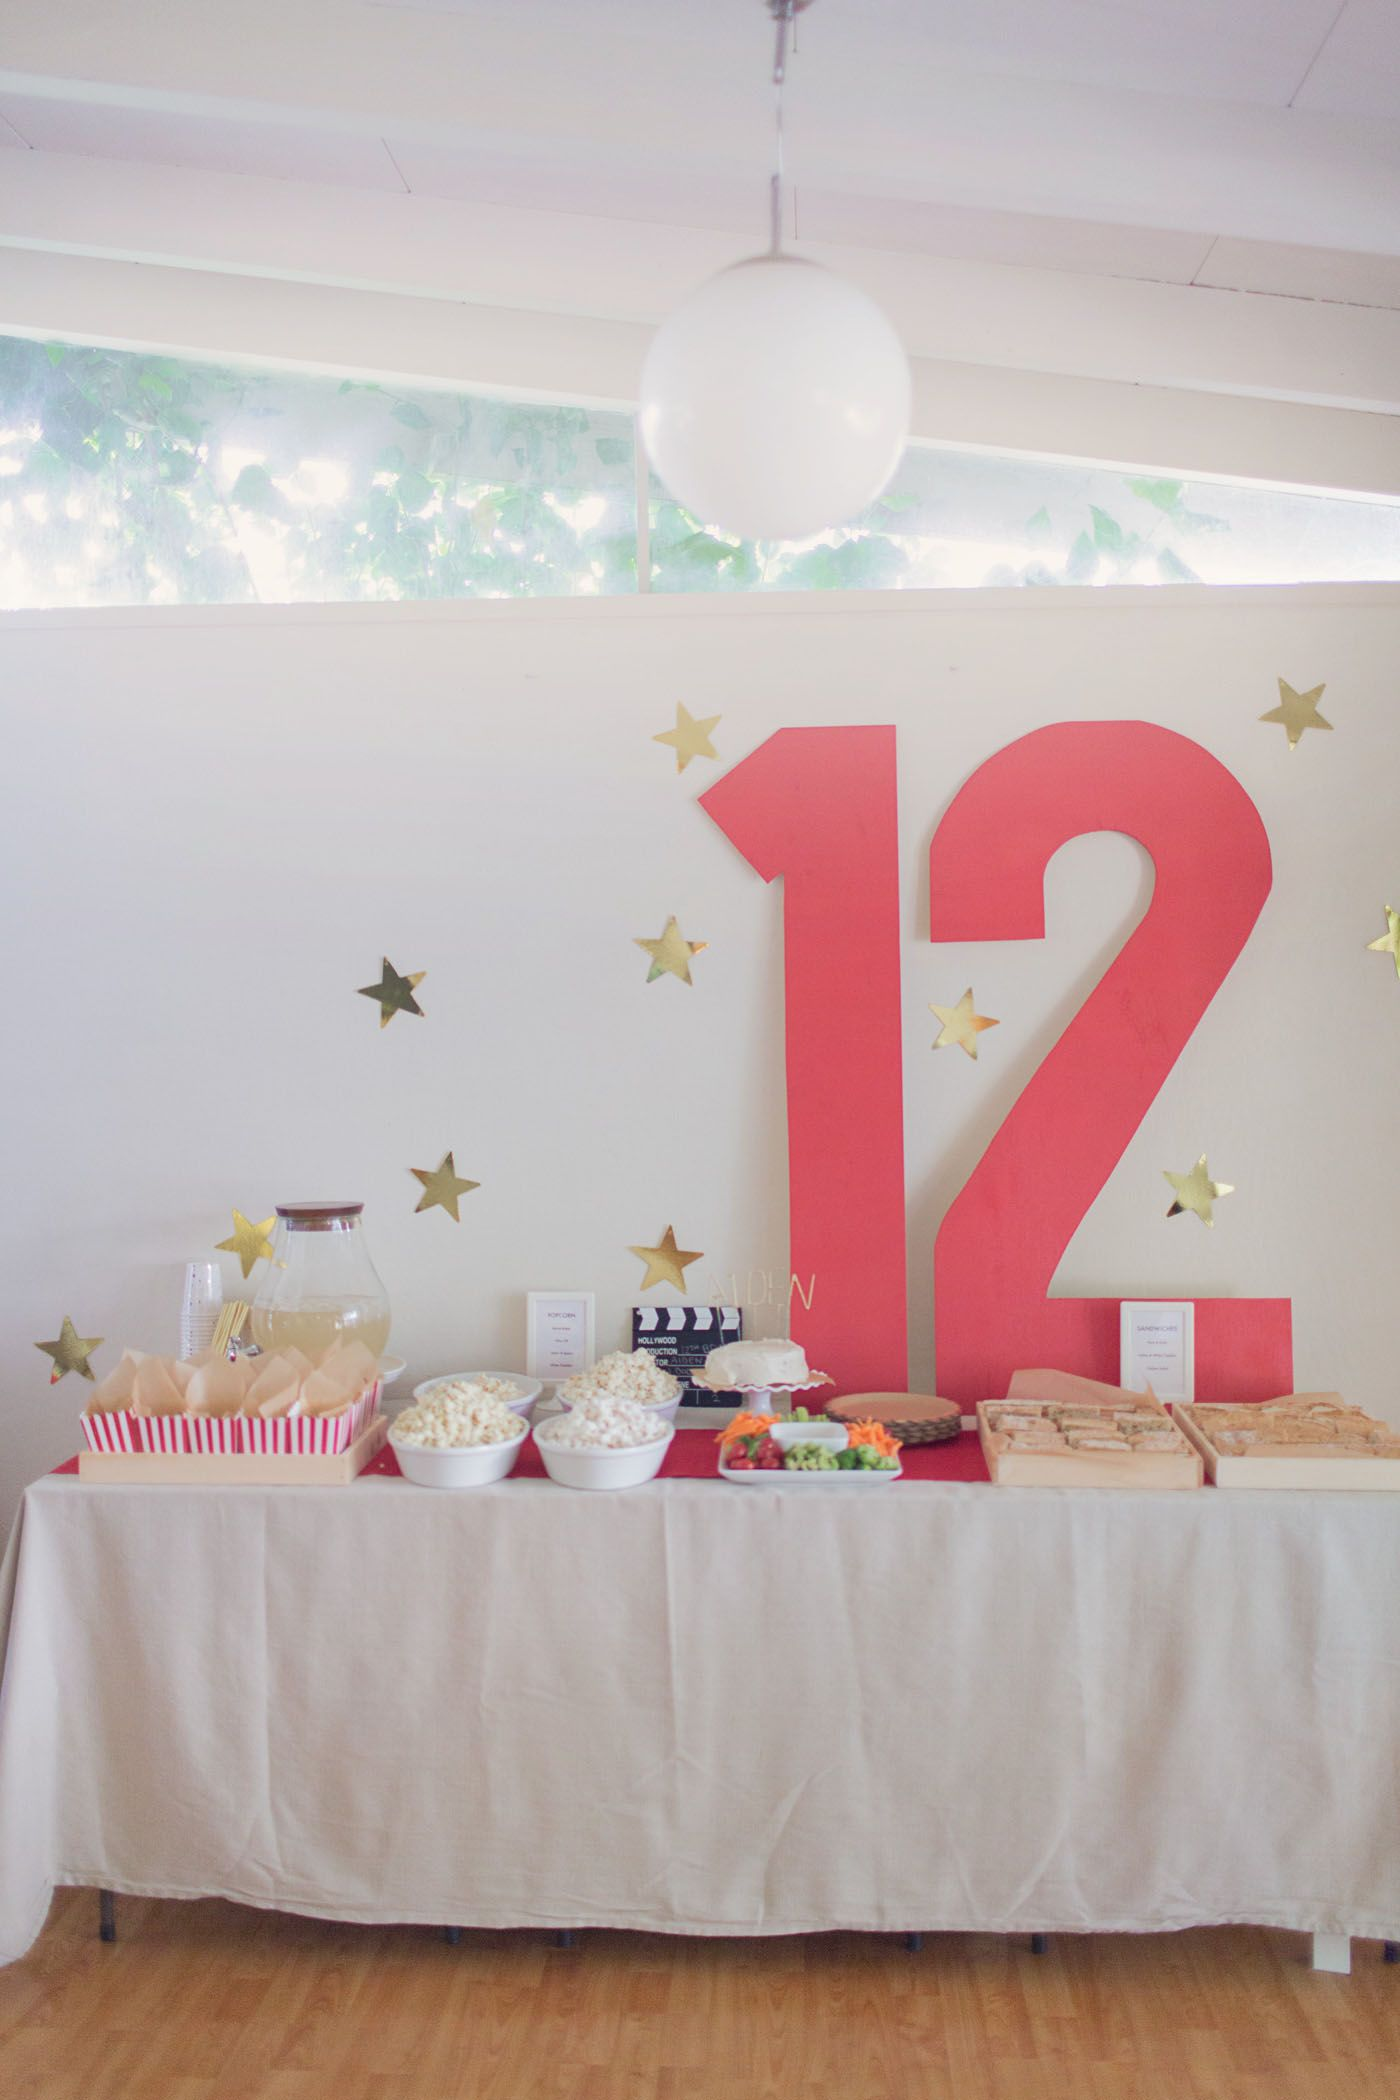 Modern Ideas For Teenage Birthday Parties At Home Model - Home ...